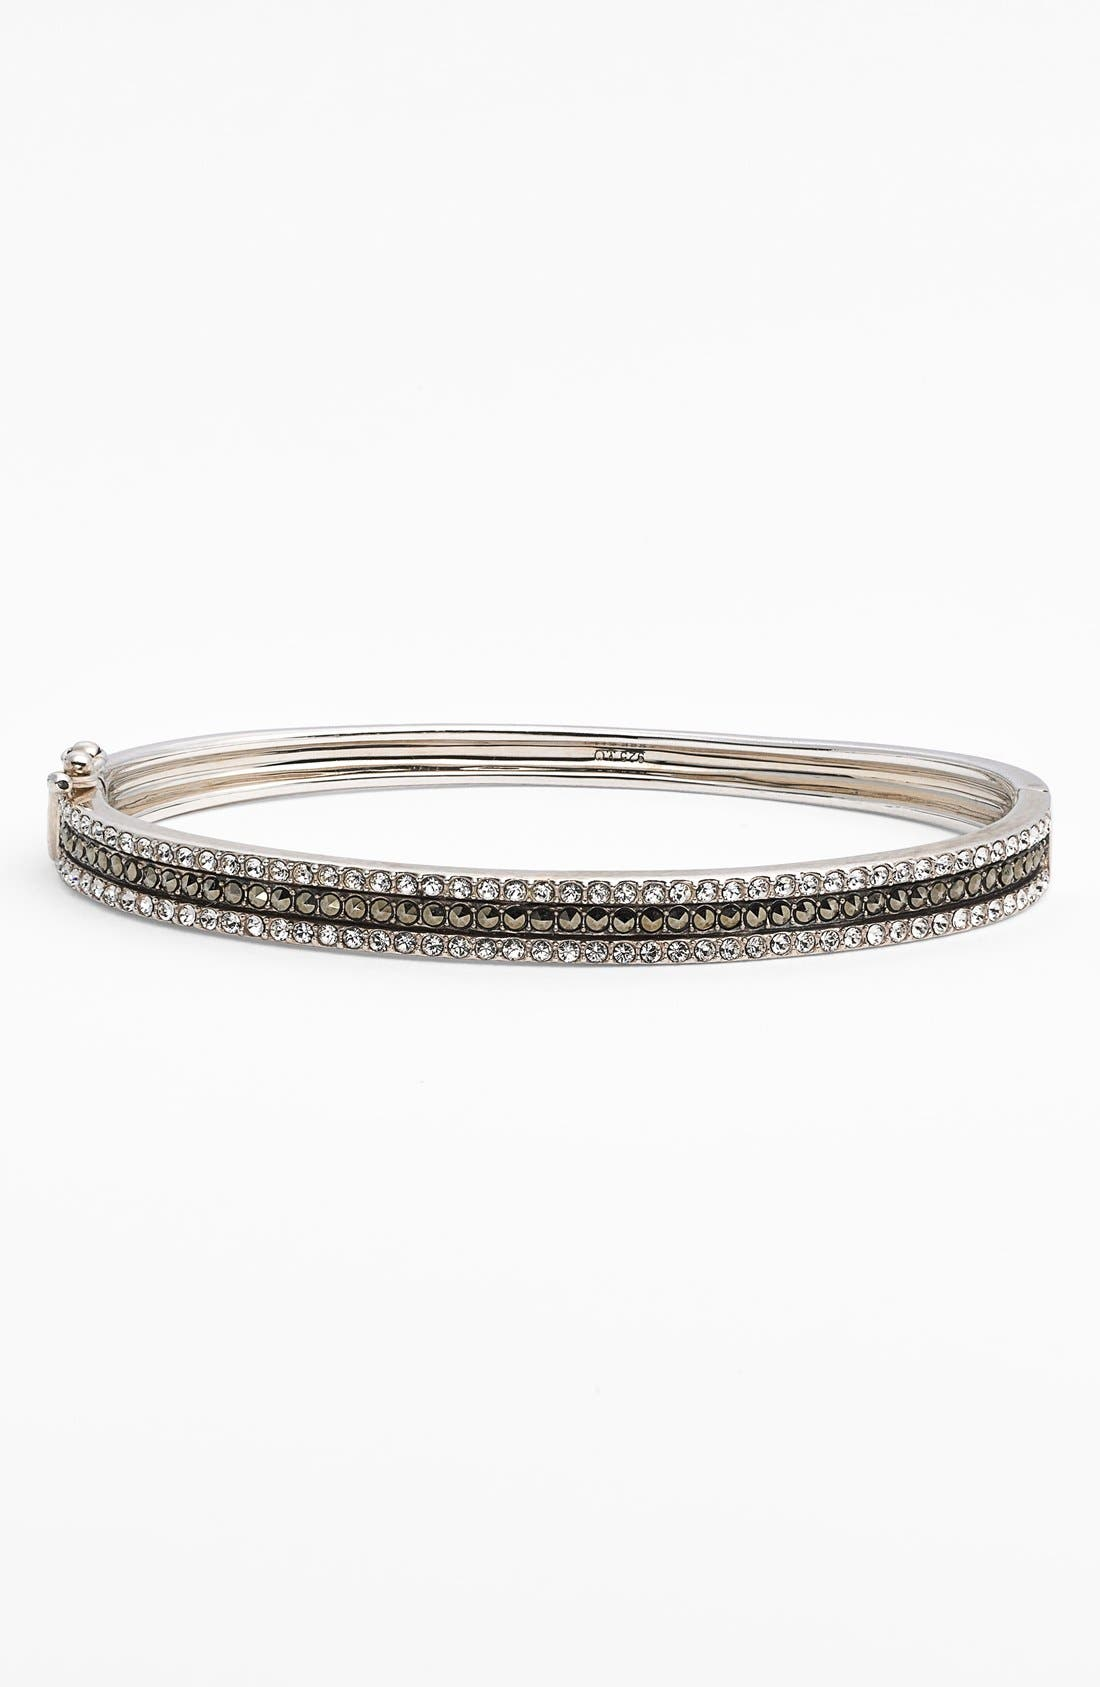 Alternate Image 1 Selected - Judith Jack Triple Row Bangle